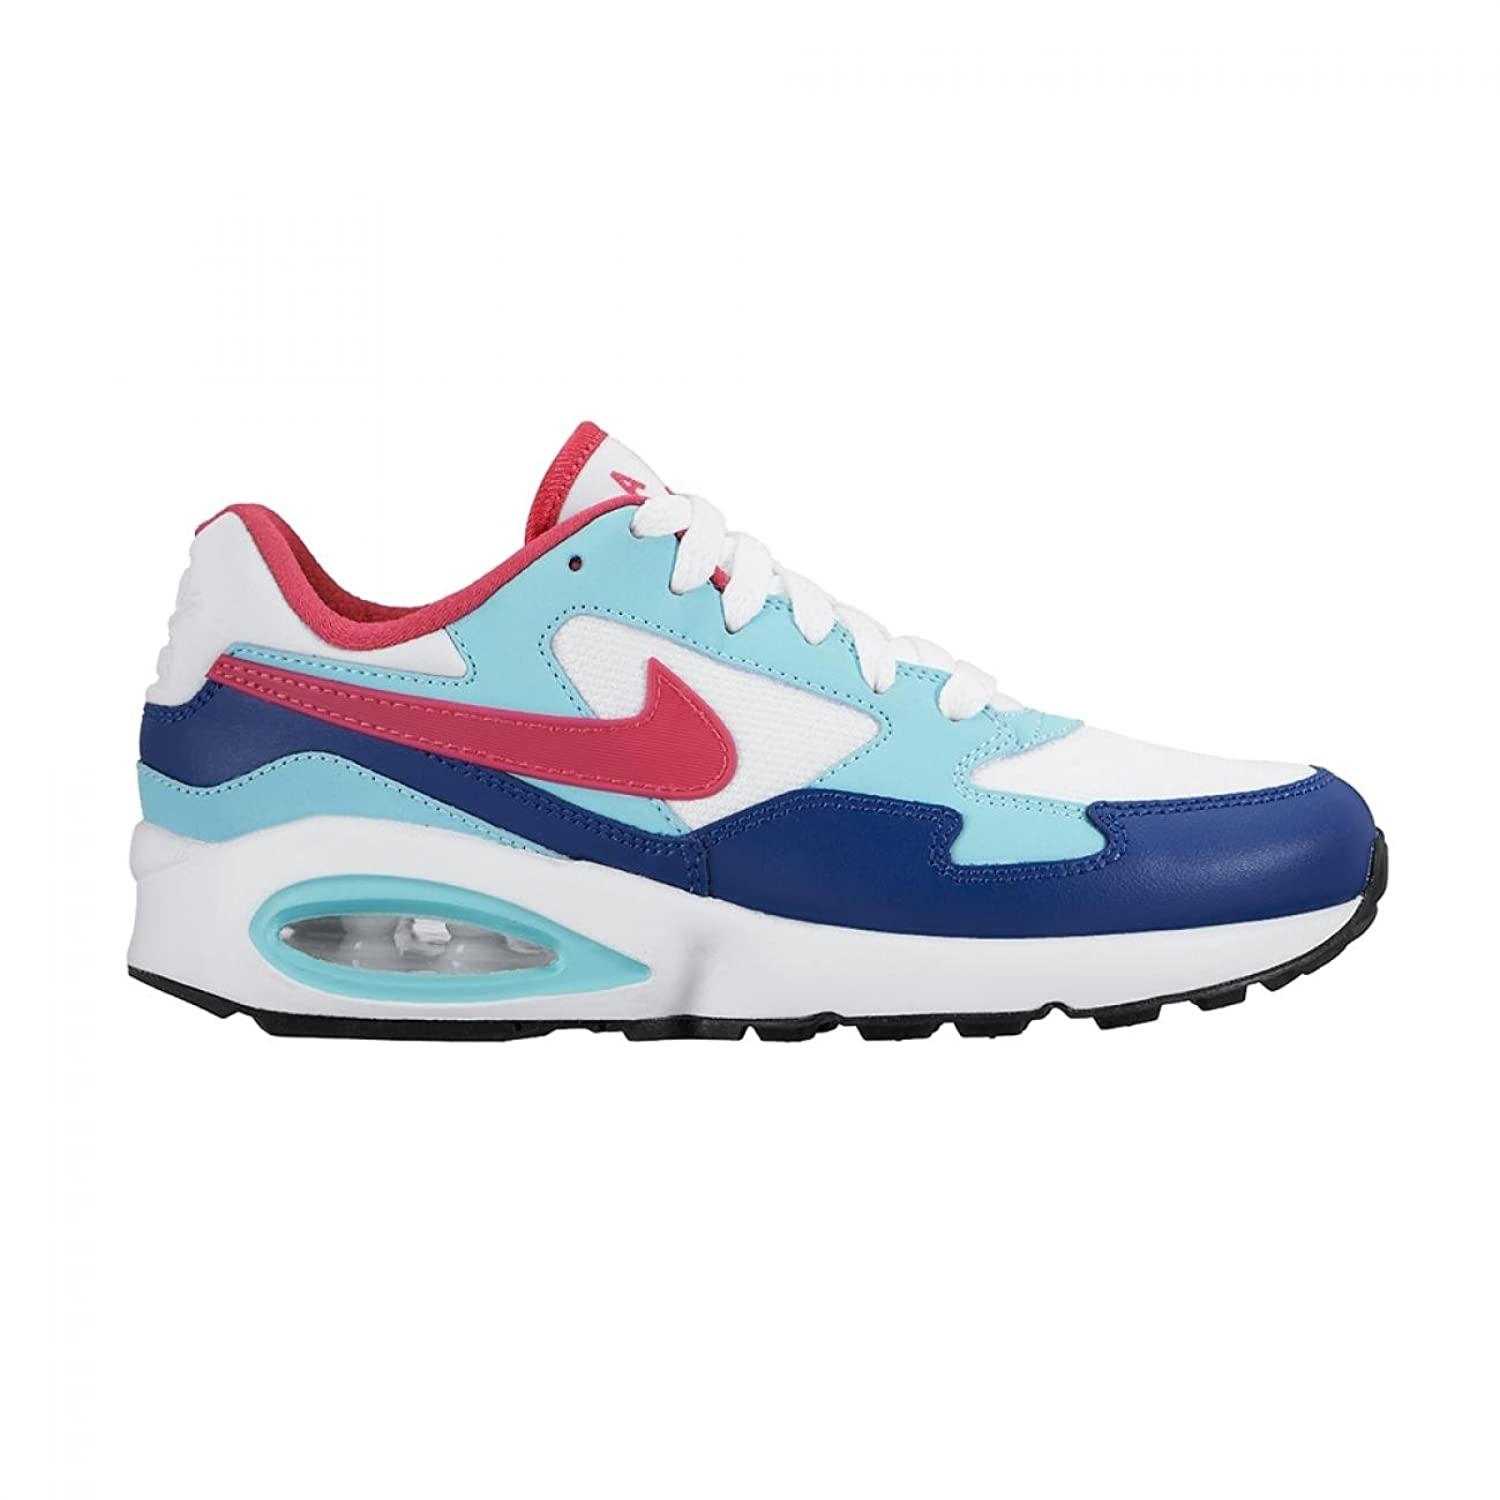 b523c086b6 nike air max 1 india online > OFF69% Discounts